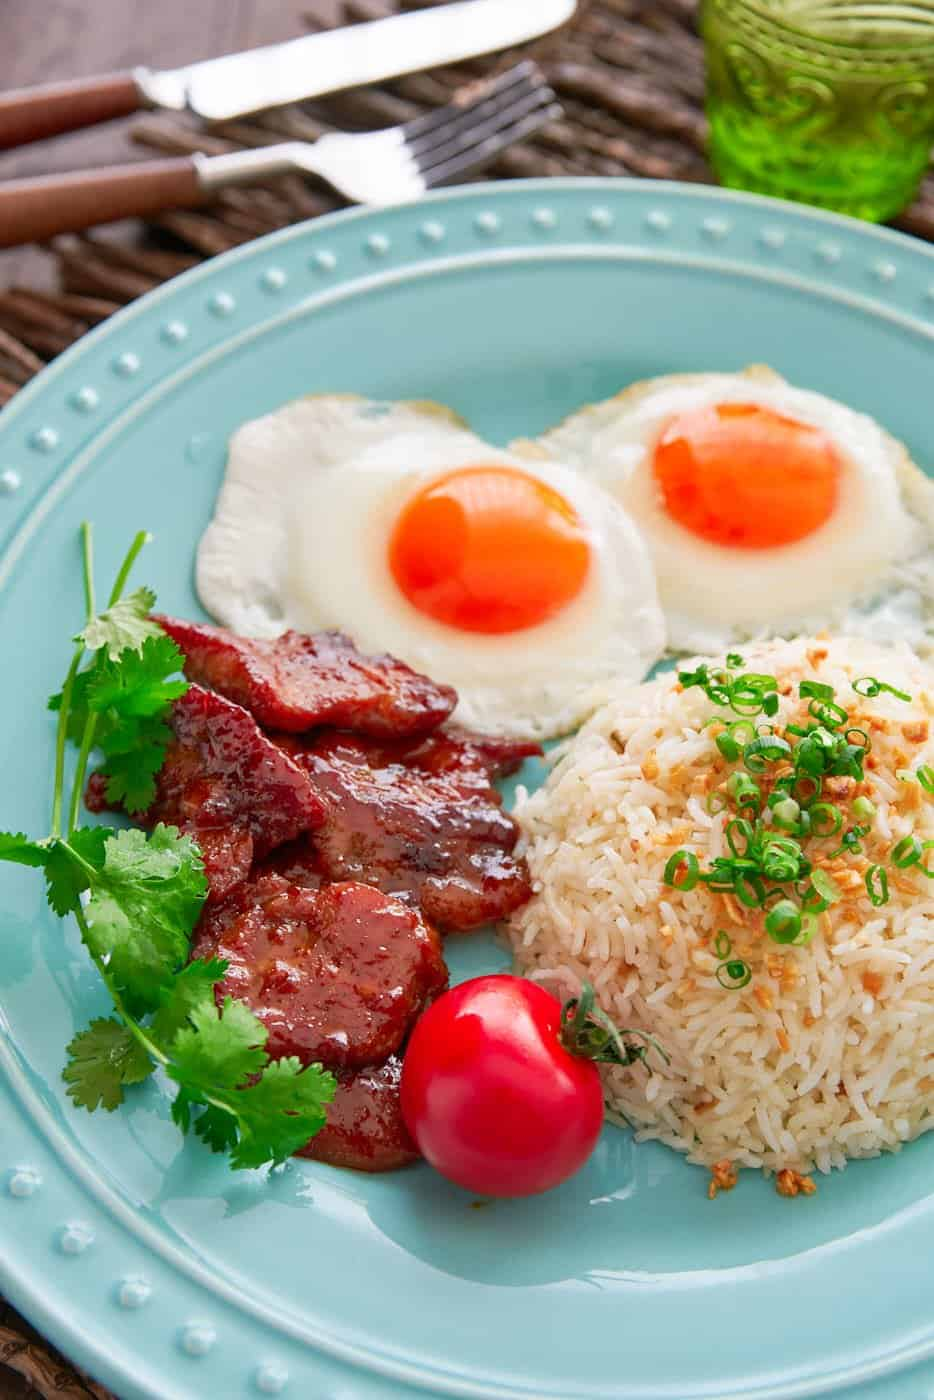 Tosilog is one of the best breakfasts ever. With sweet and savory Tocino (Filipino Bacon), garlicky Sinangag (garlic fried rice), and sunny side up eggs, this classic Filipino combo is the perfect way to start your day.